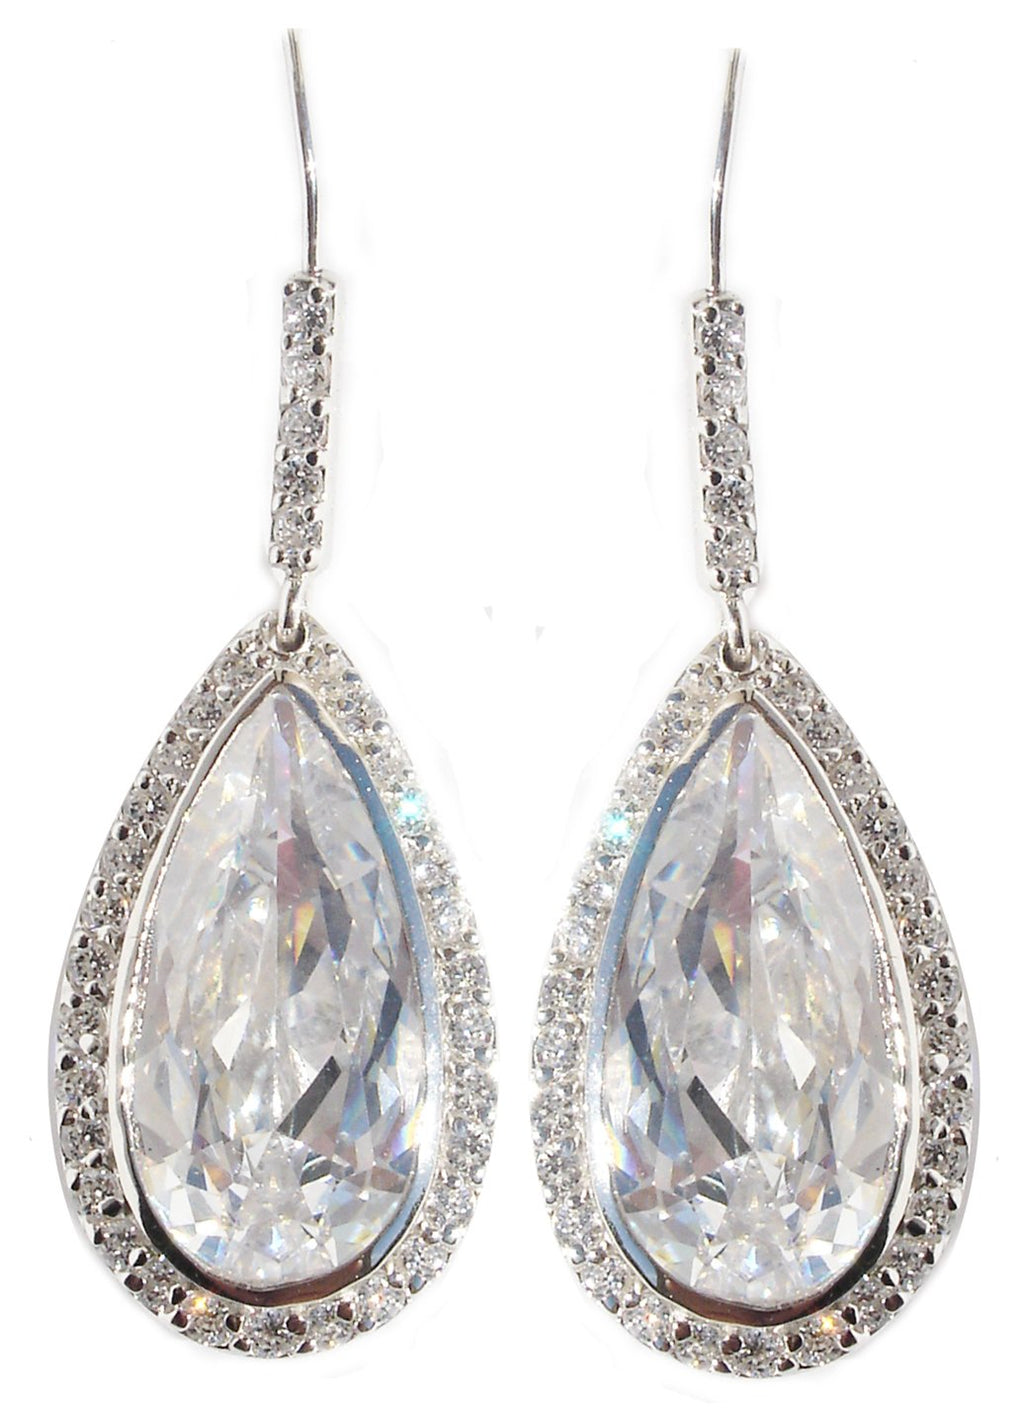 Earring Tear Drop Cz Pave Around Pave Ba